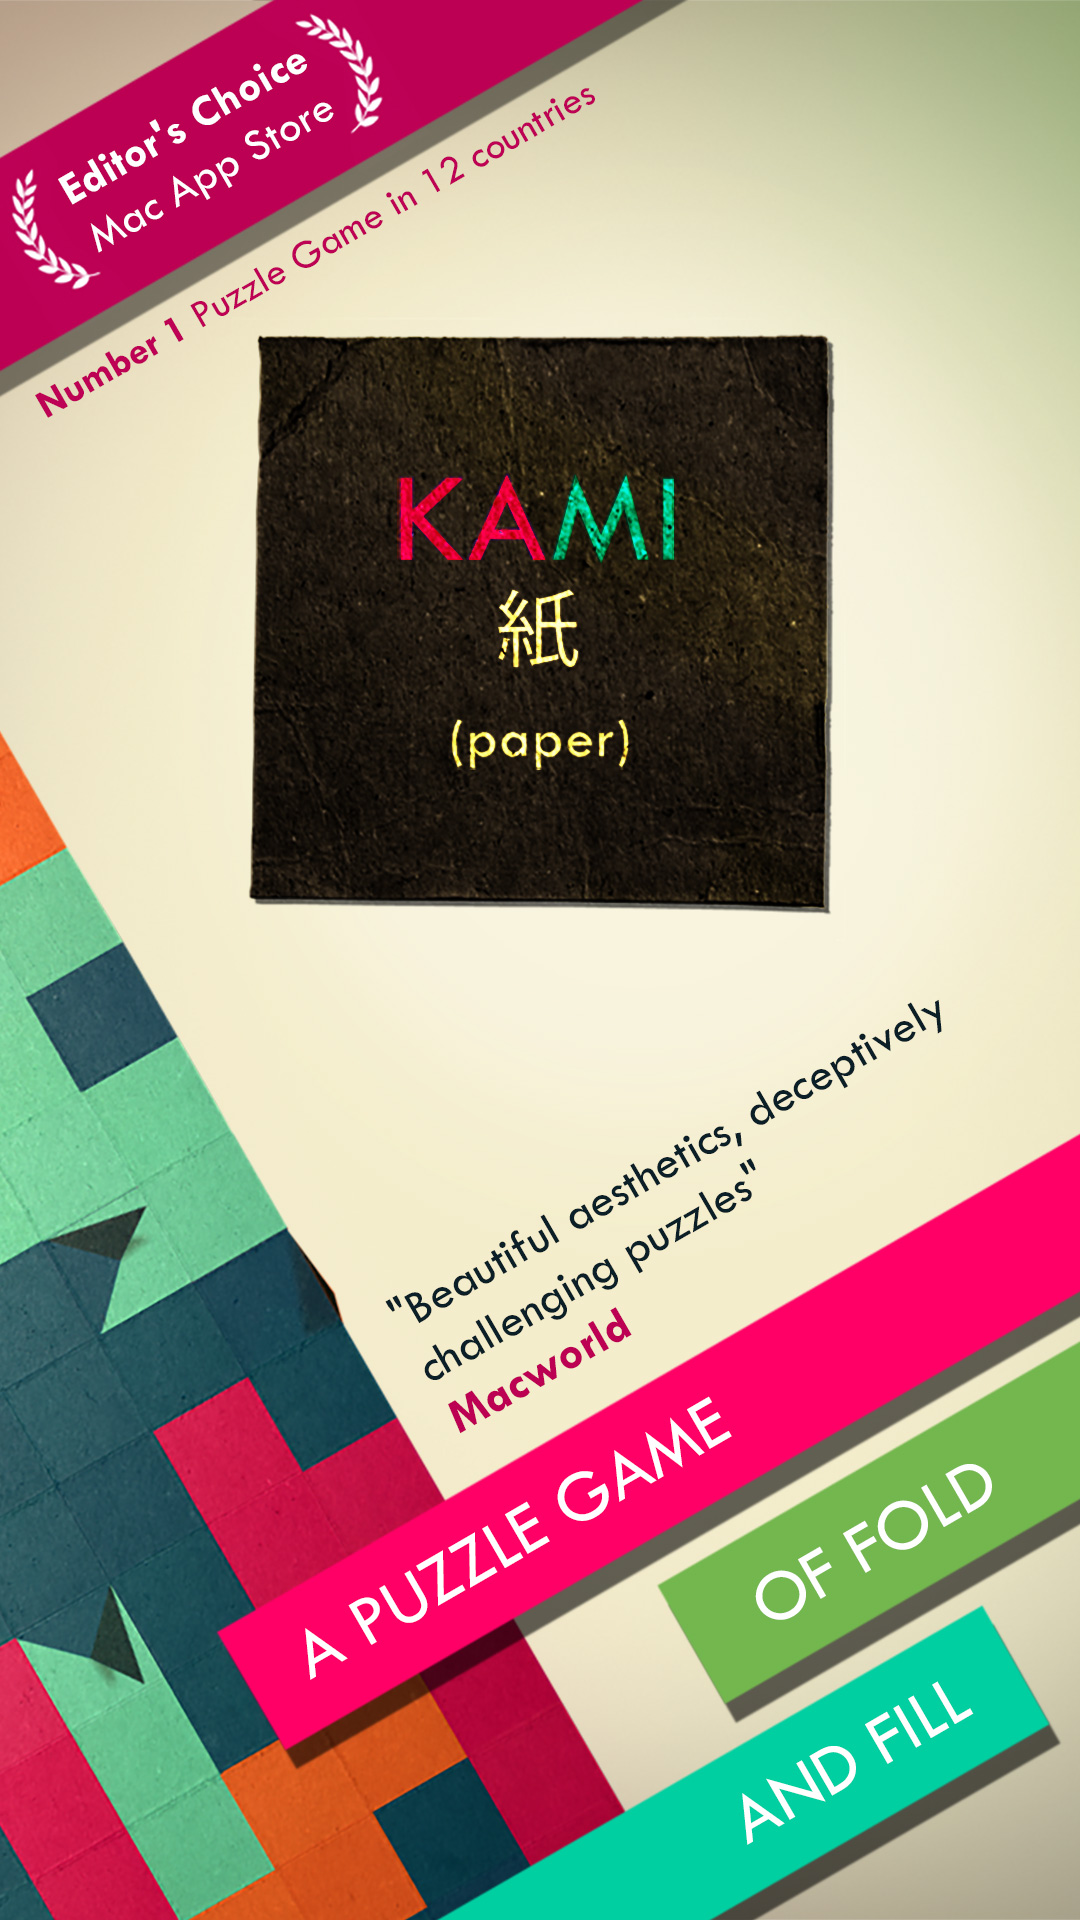 KAMI_AppStore_Android_page1.jpg